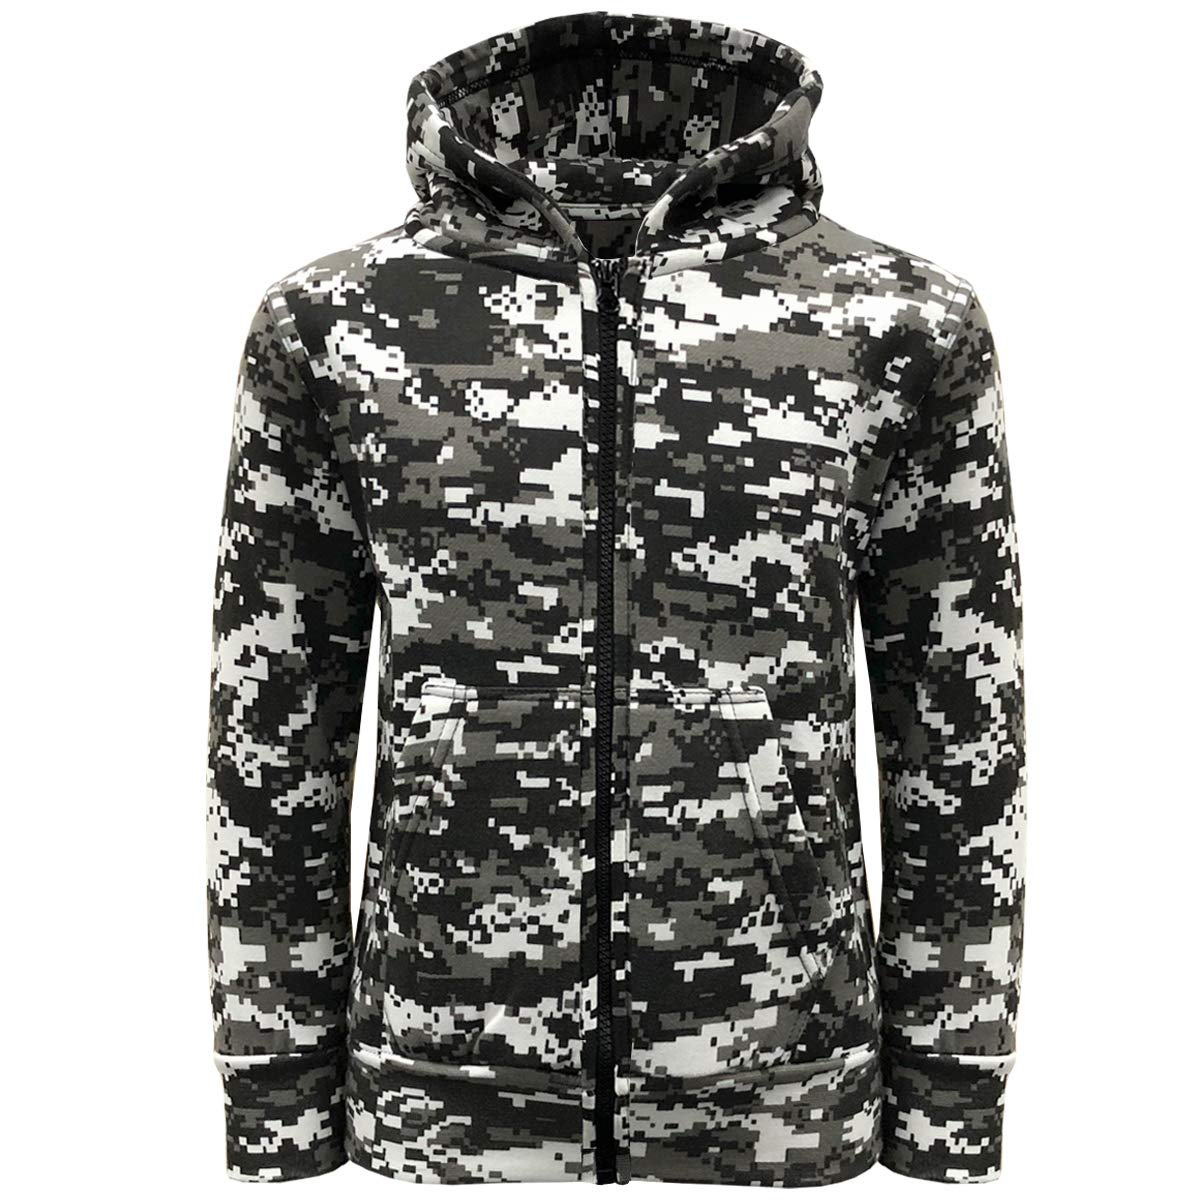 Game Technical Apparel Boys Camouflage Fleece Zip Hoodie Sweatshirt Top